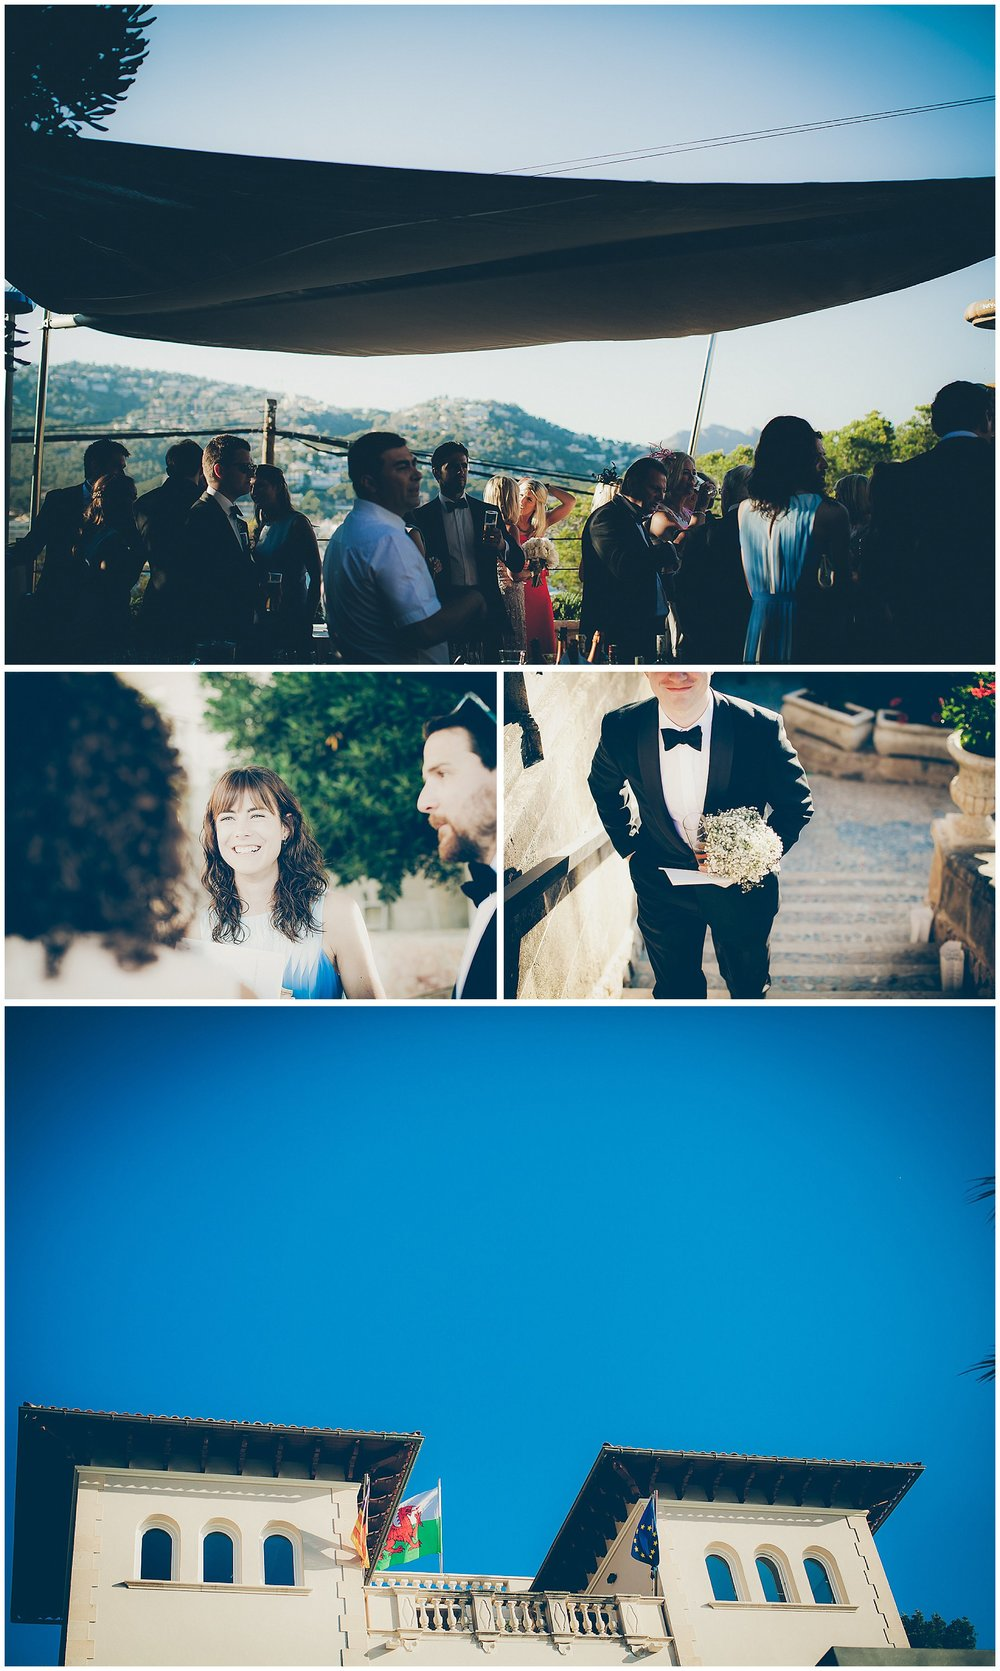 Church_VillaItalia_MallorcaWedding_FionaClairPhotography-161.jpg